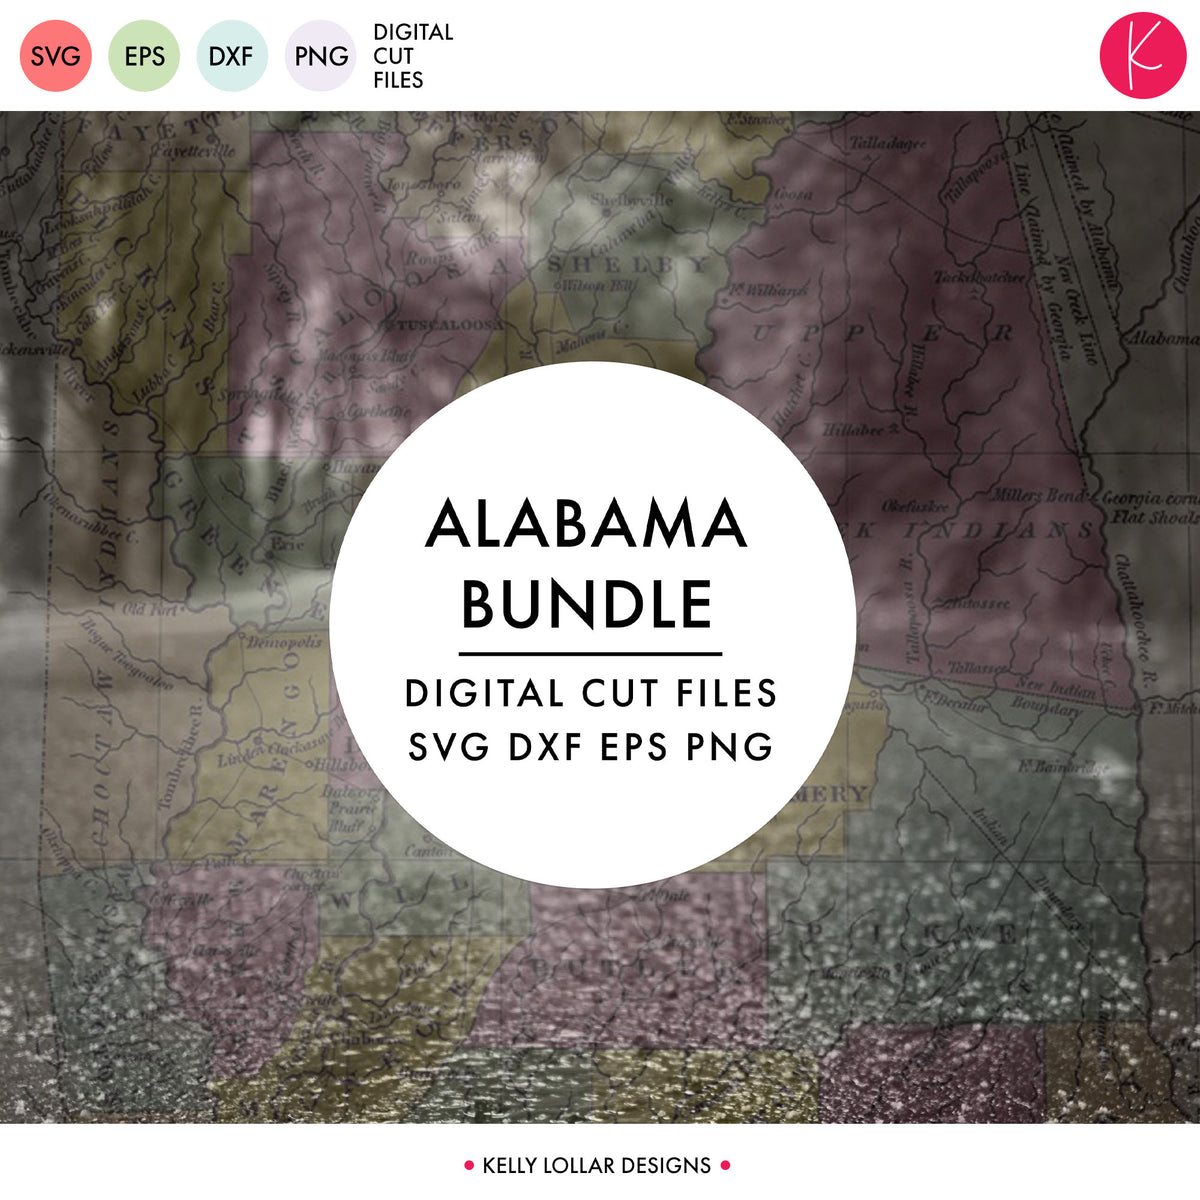 Alabama State Bundle | SVG DXF EPS PNG Cut Files